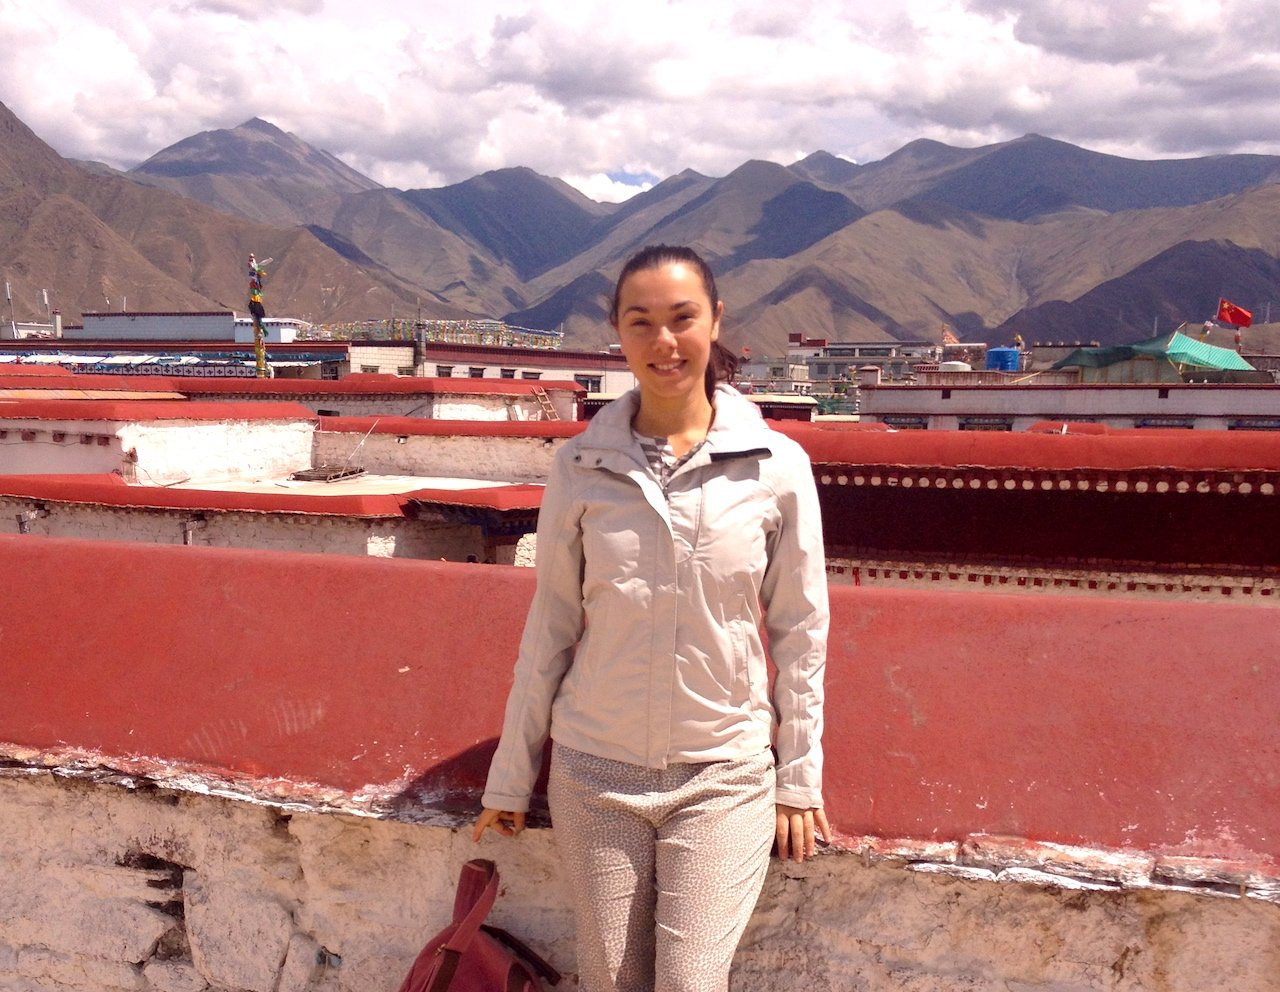 4-day tour of Lhasa, Tibet. My experience in one of the centers of Tibetan Buddhism